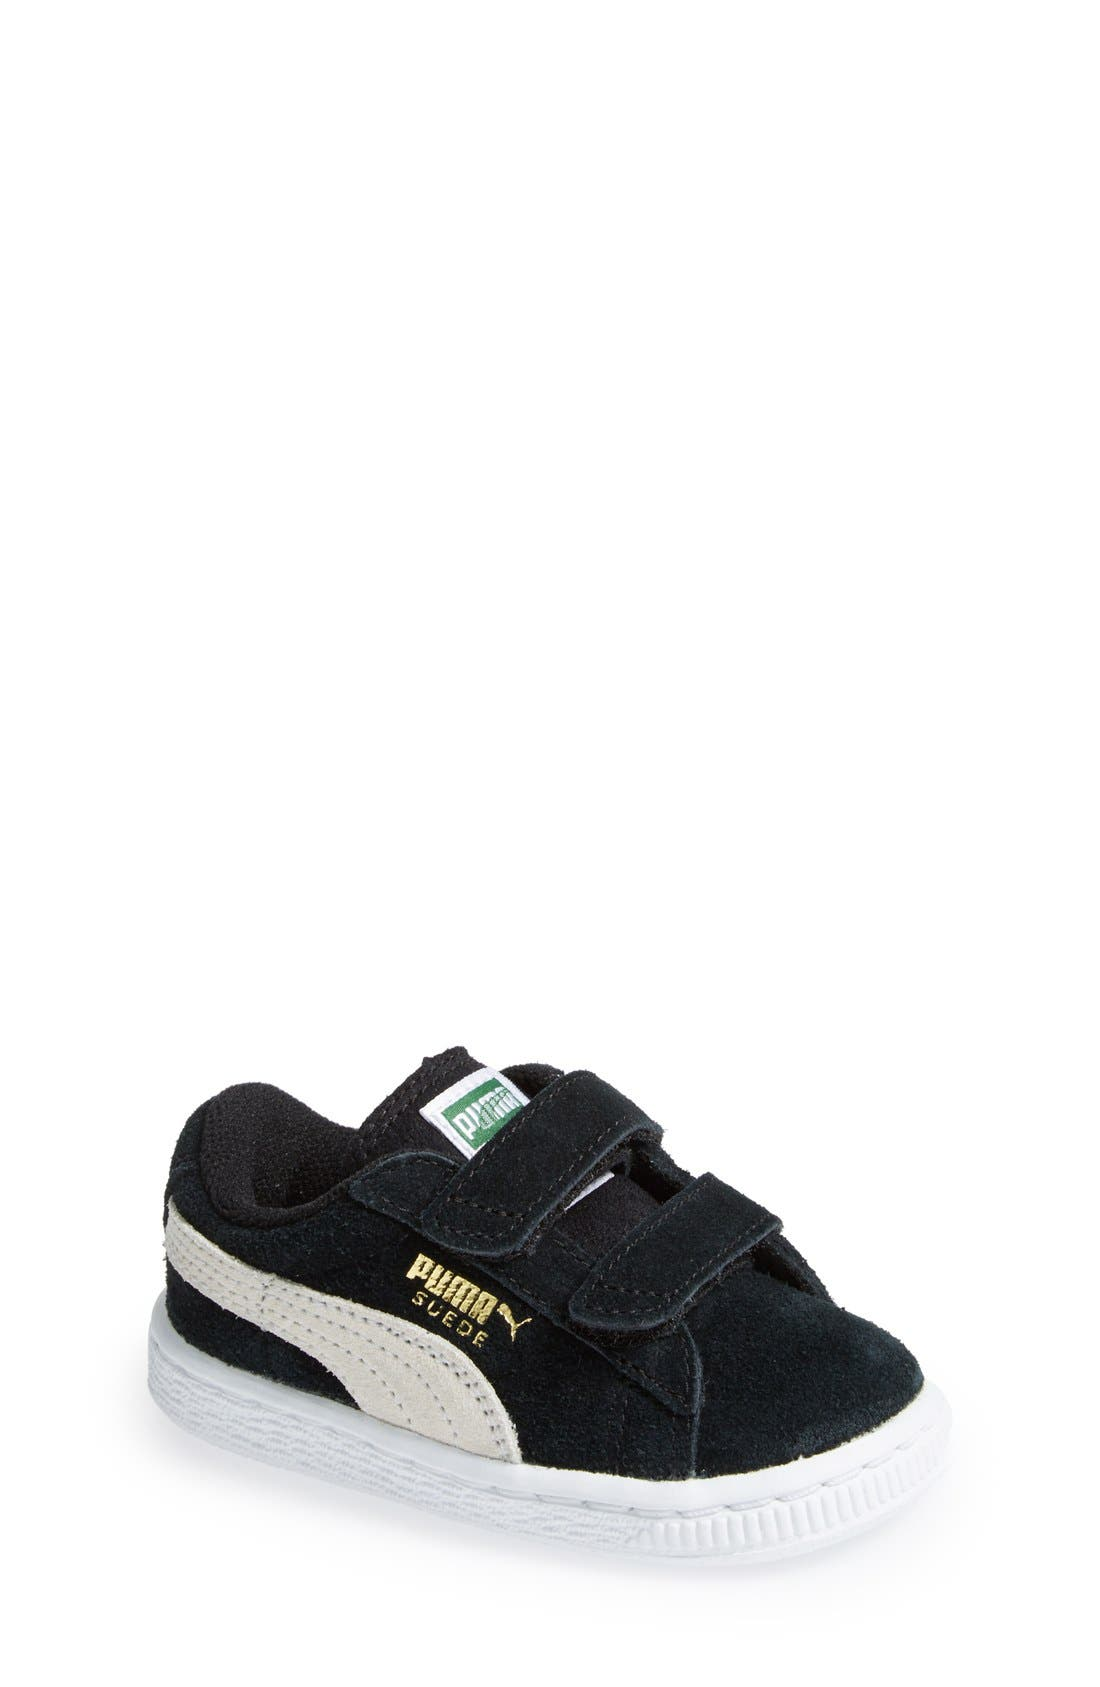 Suede Sneaker,                             Main thumbnail 1, color,                             Black/ White